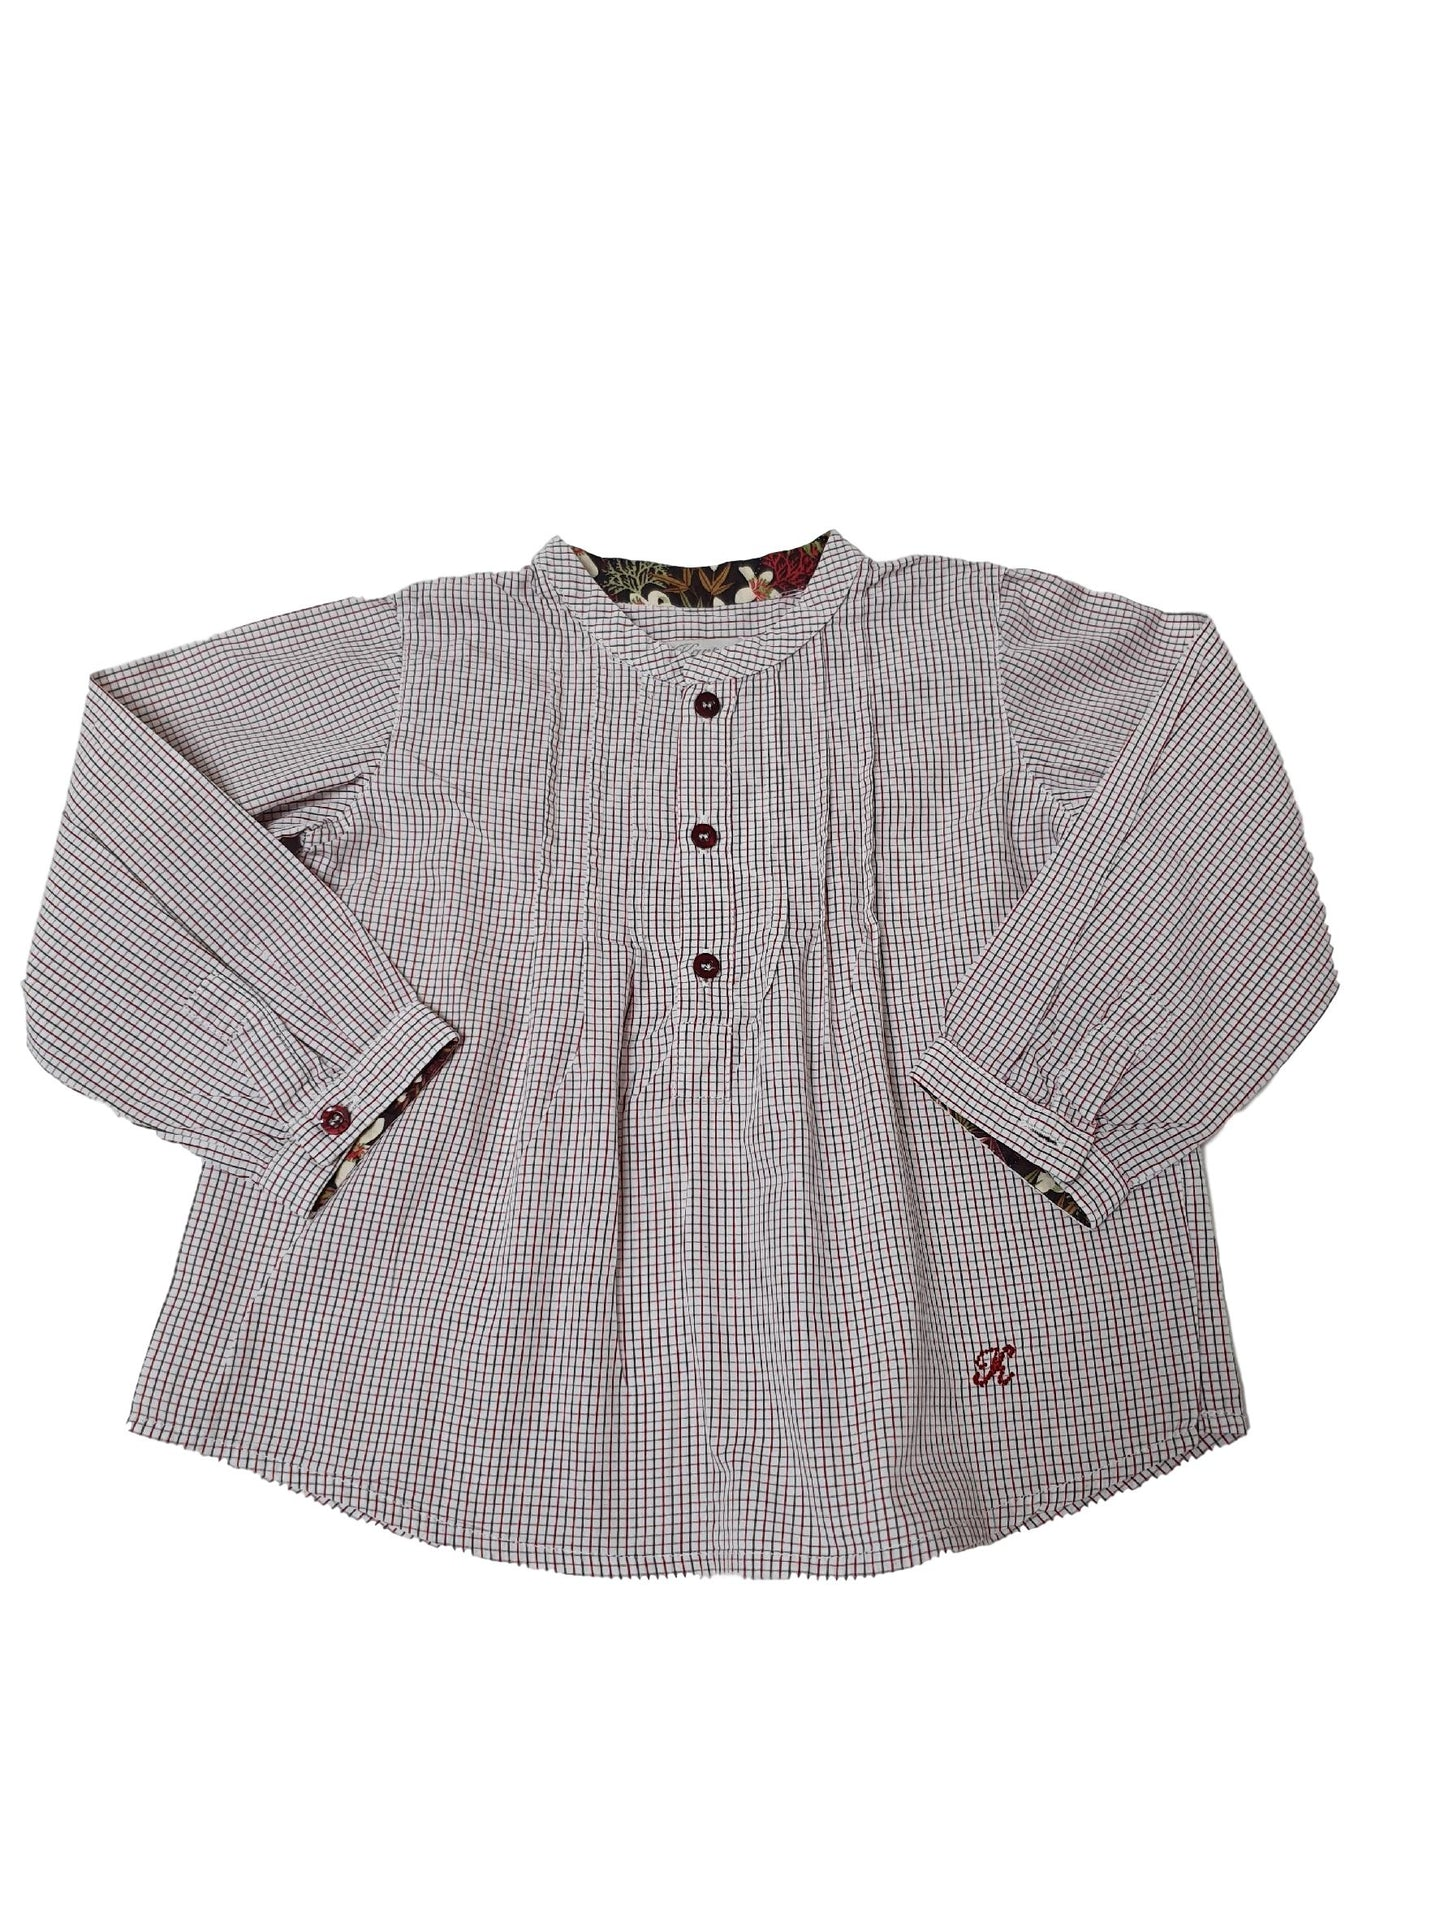 KARPI boy shirt 2yo